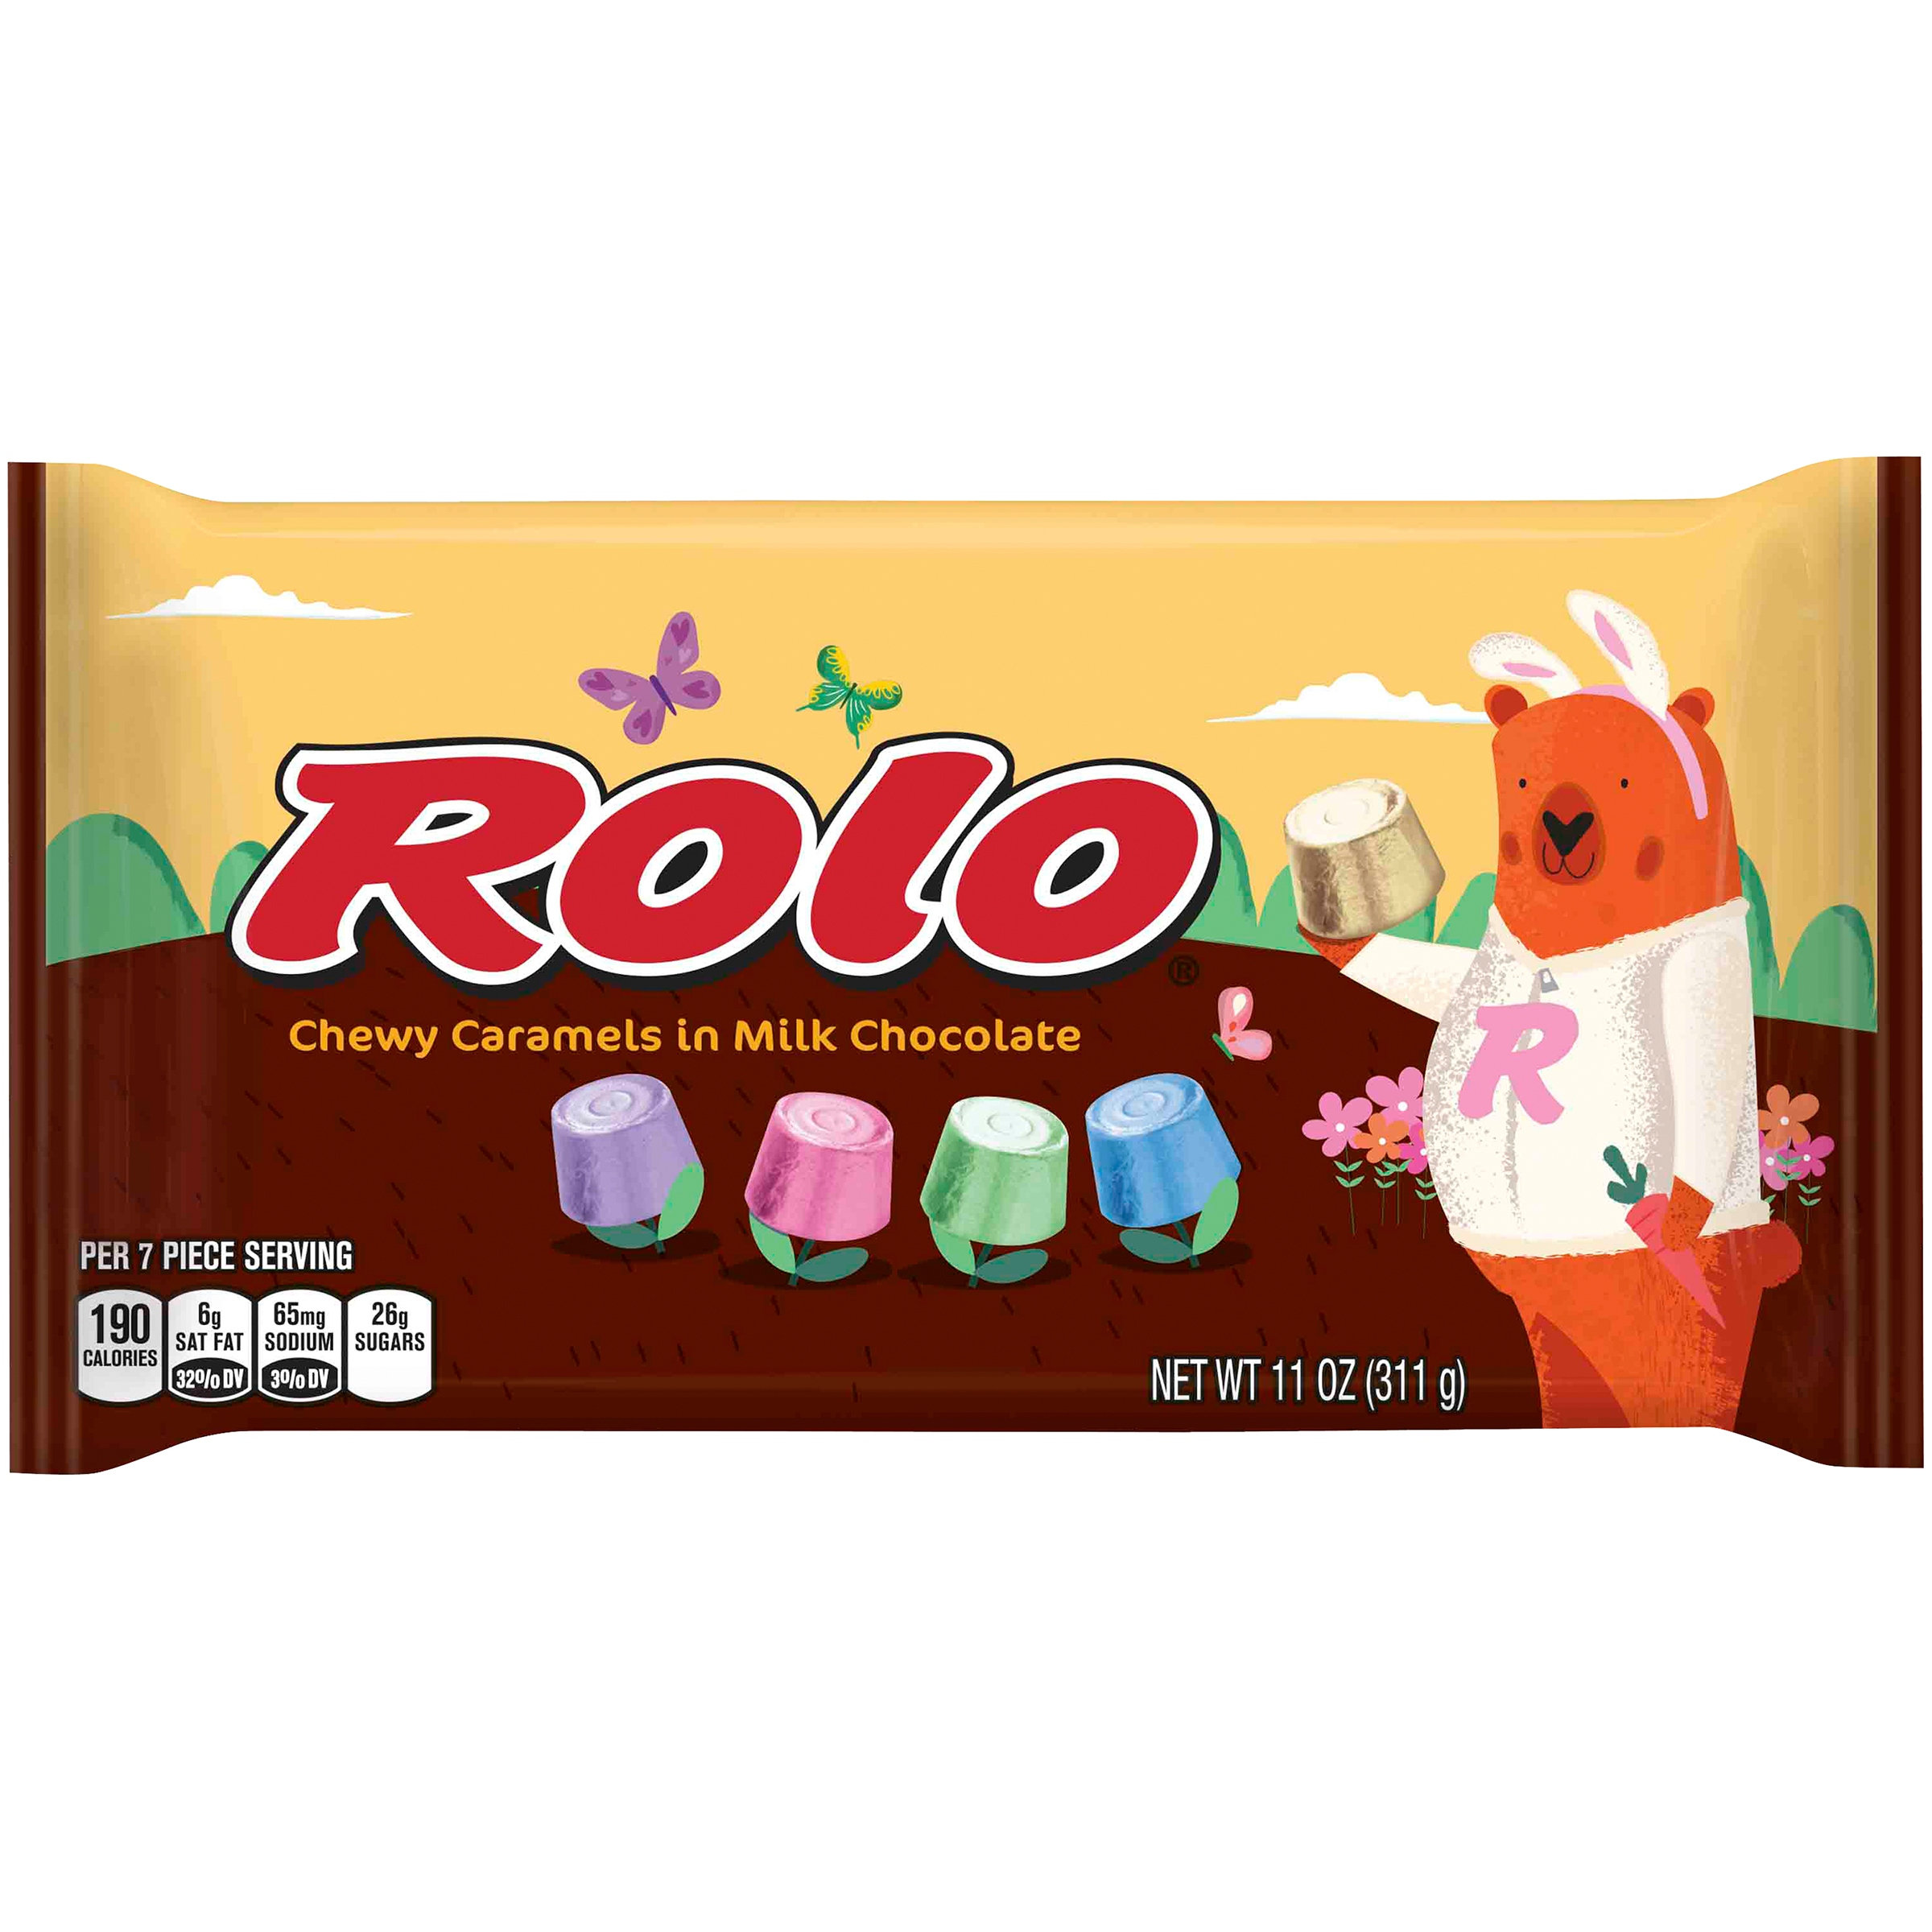 Rolo Easter Chewy Caramels in Milk Chocolate 11 oz. Bag by Hershey's